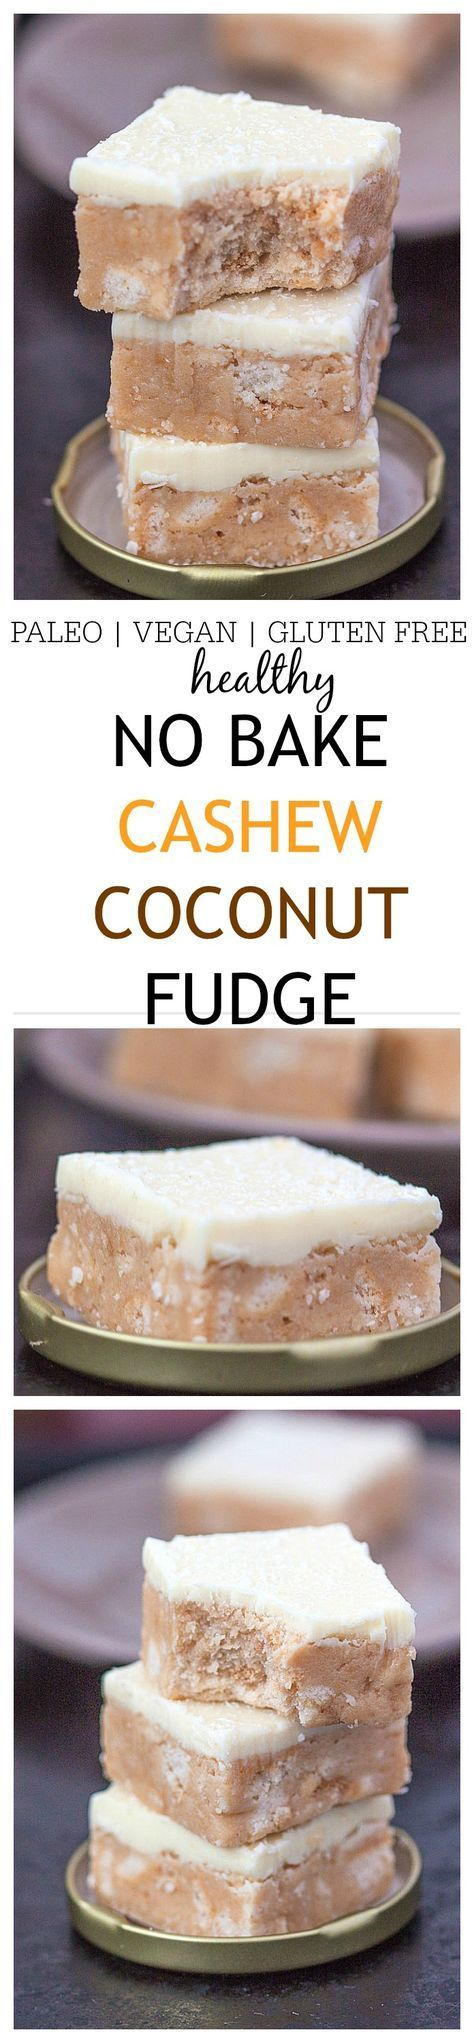 """Heathy {No Bake!} Cashew Coconut Fudge- The most delicious """"healthy"""" fudge you'll ever have based off cashew and coconut flavours"""